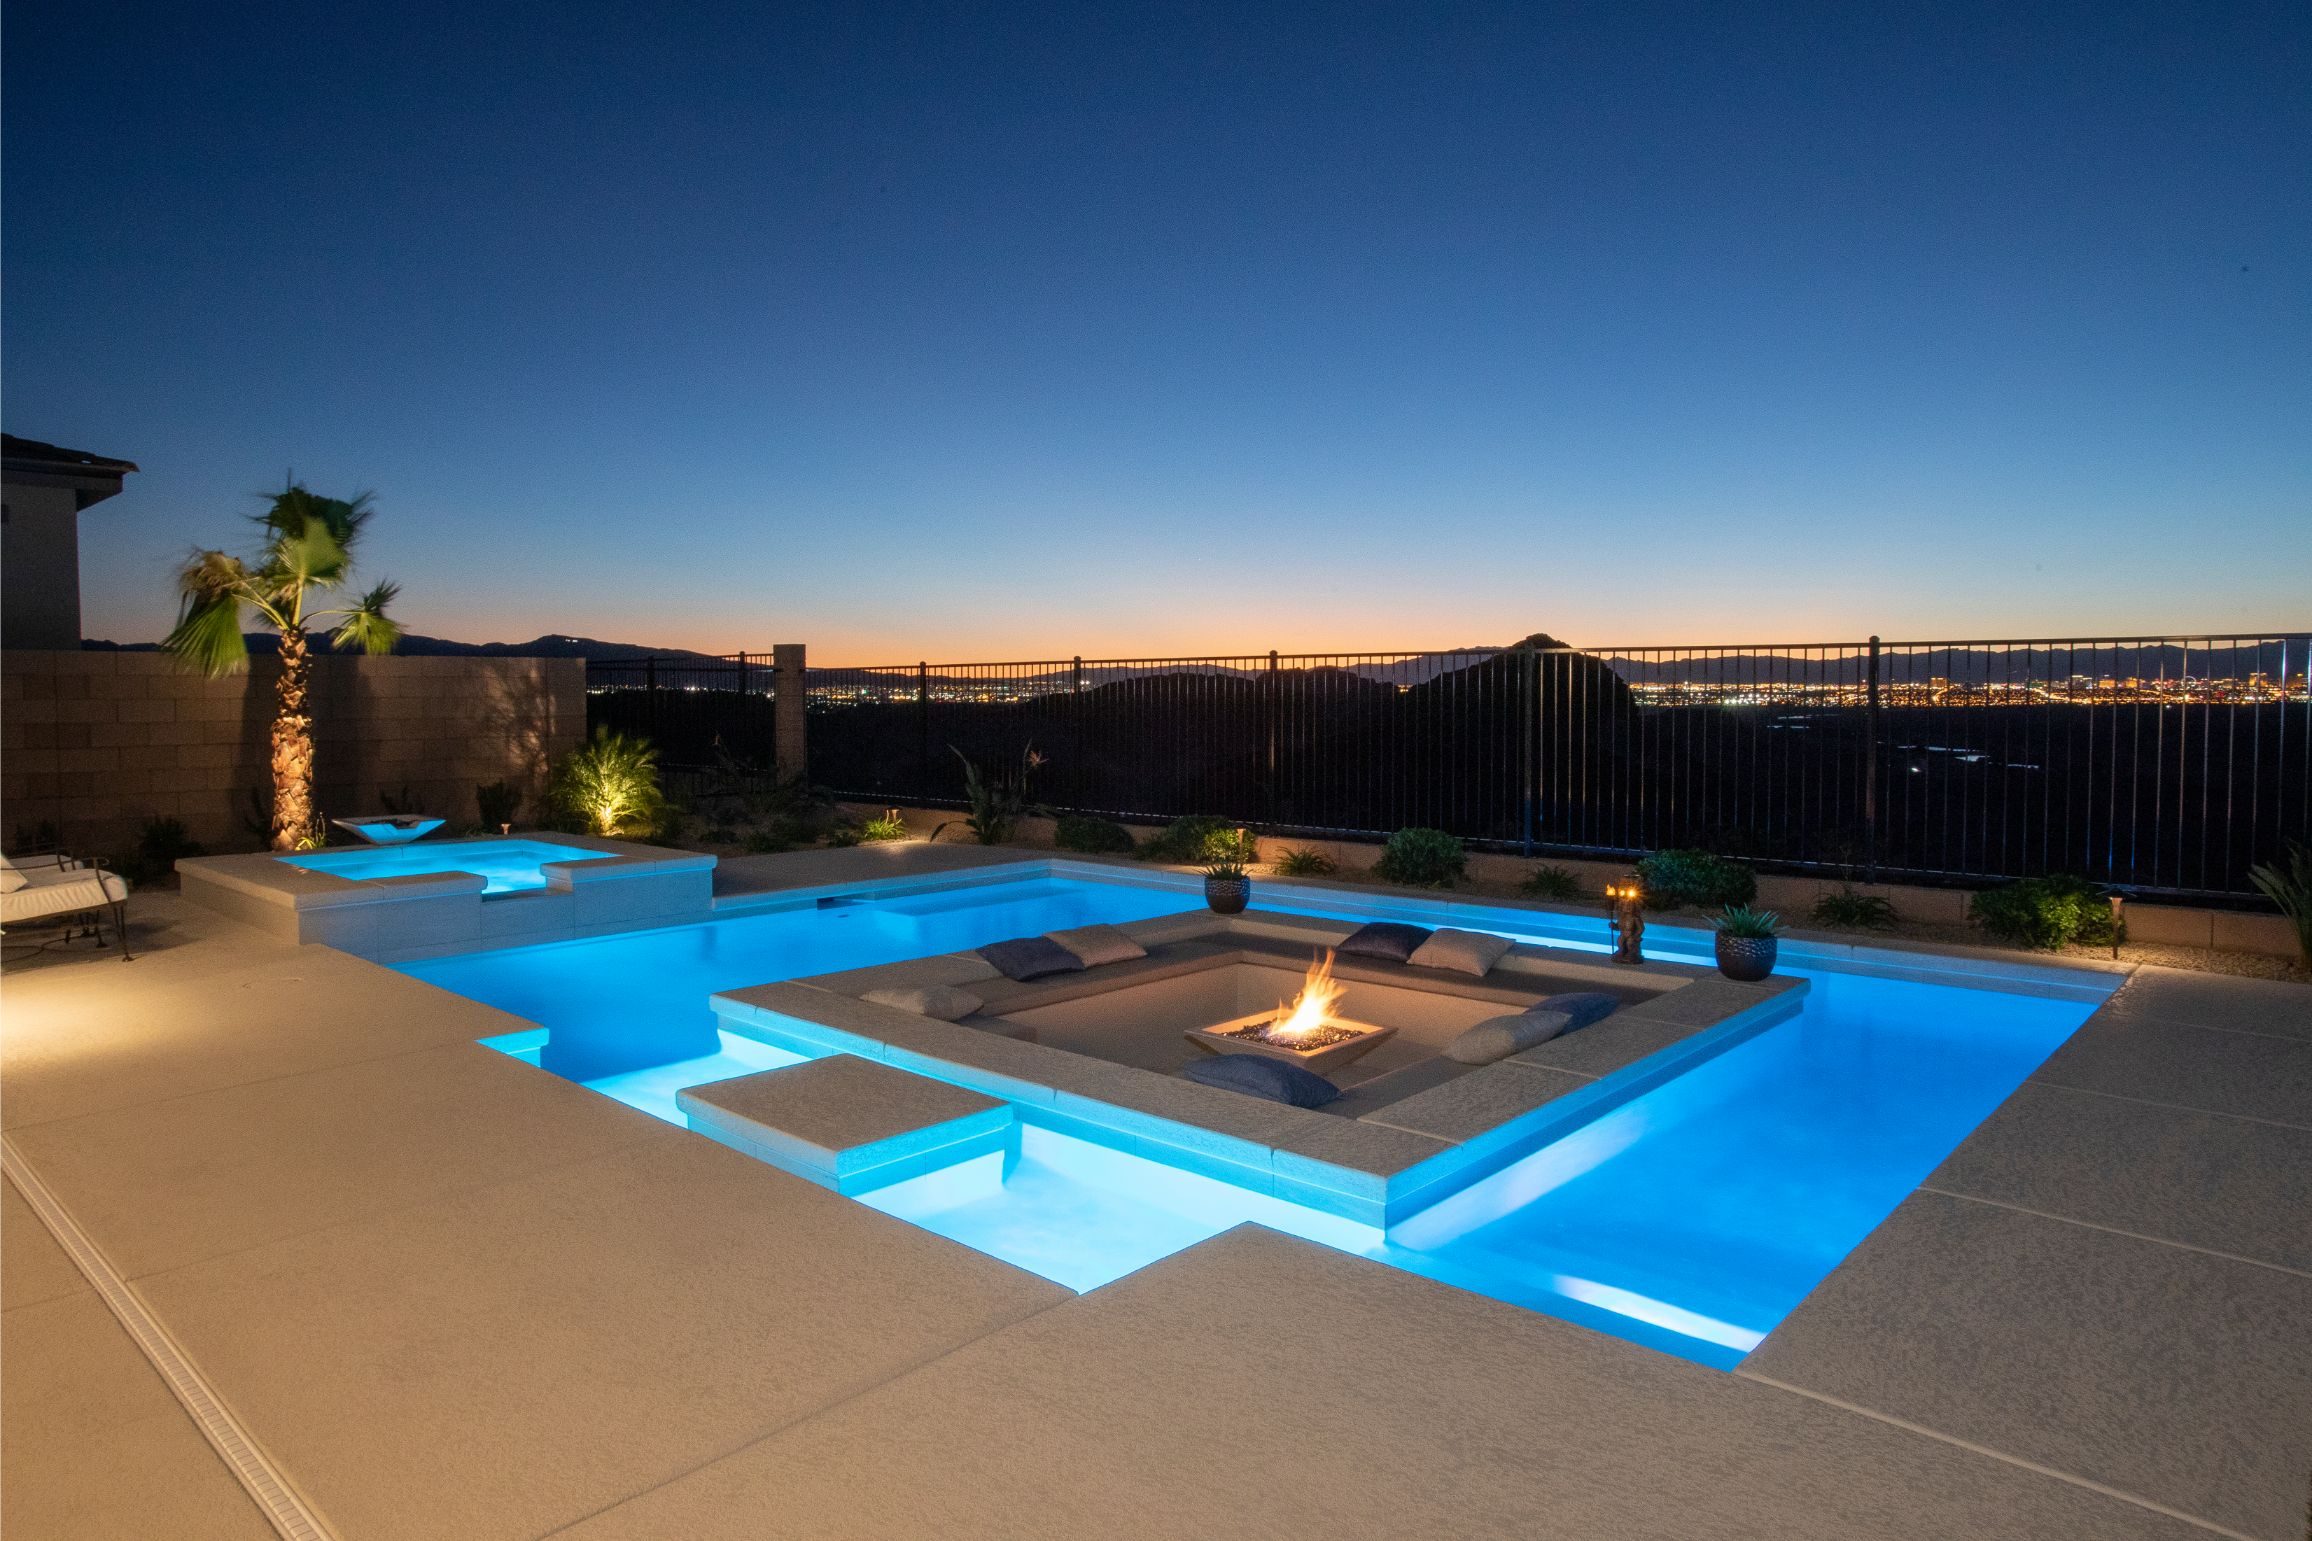 Swimming pool fire and light features — California Pools